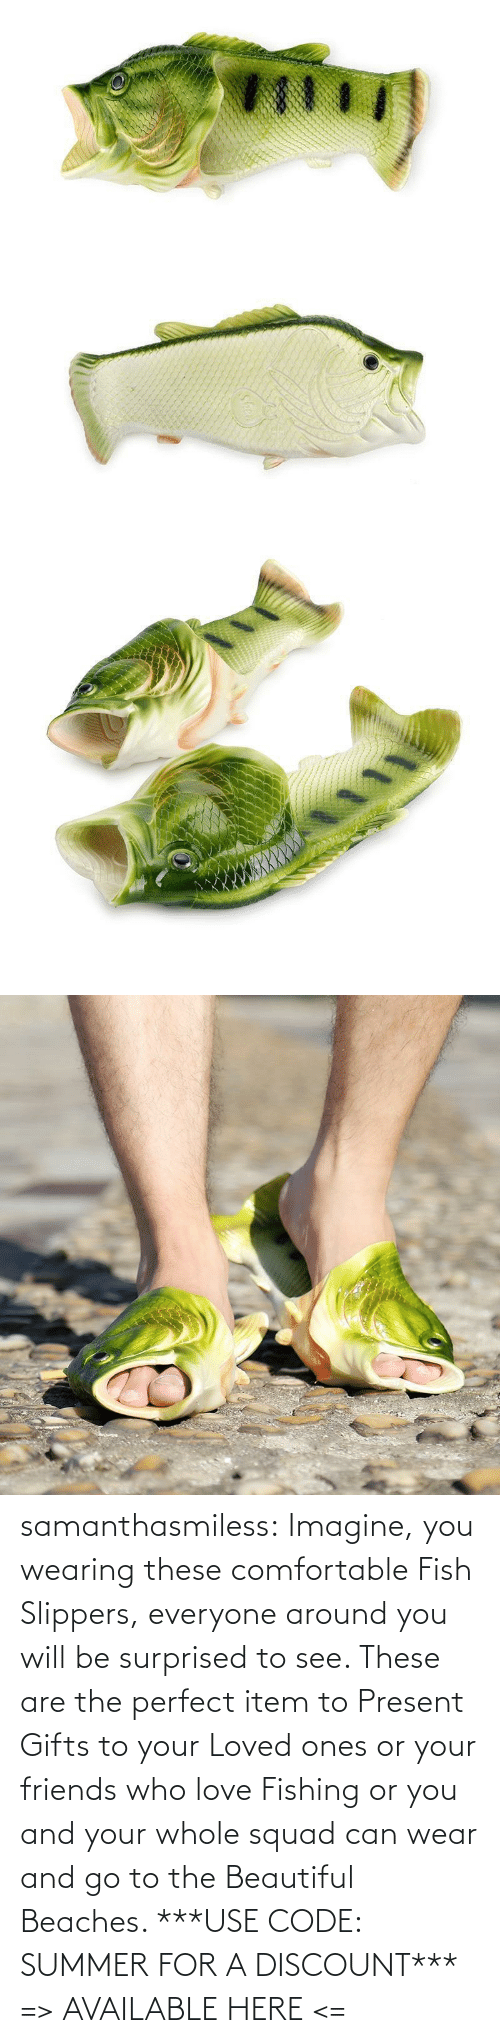 comfortable: samanthasmiless: Imagine, you wearing these comfortable Fish Slippers, everyone around you will be surprised to see. These are the perfect item to Present Gifts to your Loved ones or your friends who love Fishing or you and your whole squad can wear and go to the Beautiful Beaches.  ***USE CODE: SUMMER FOR A DISCOUNT*** => AVAILABLE HERE <=